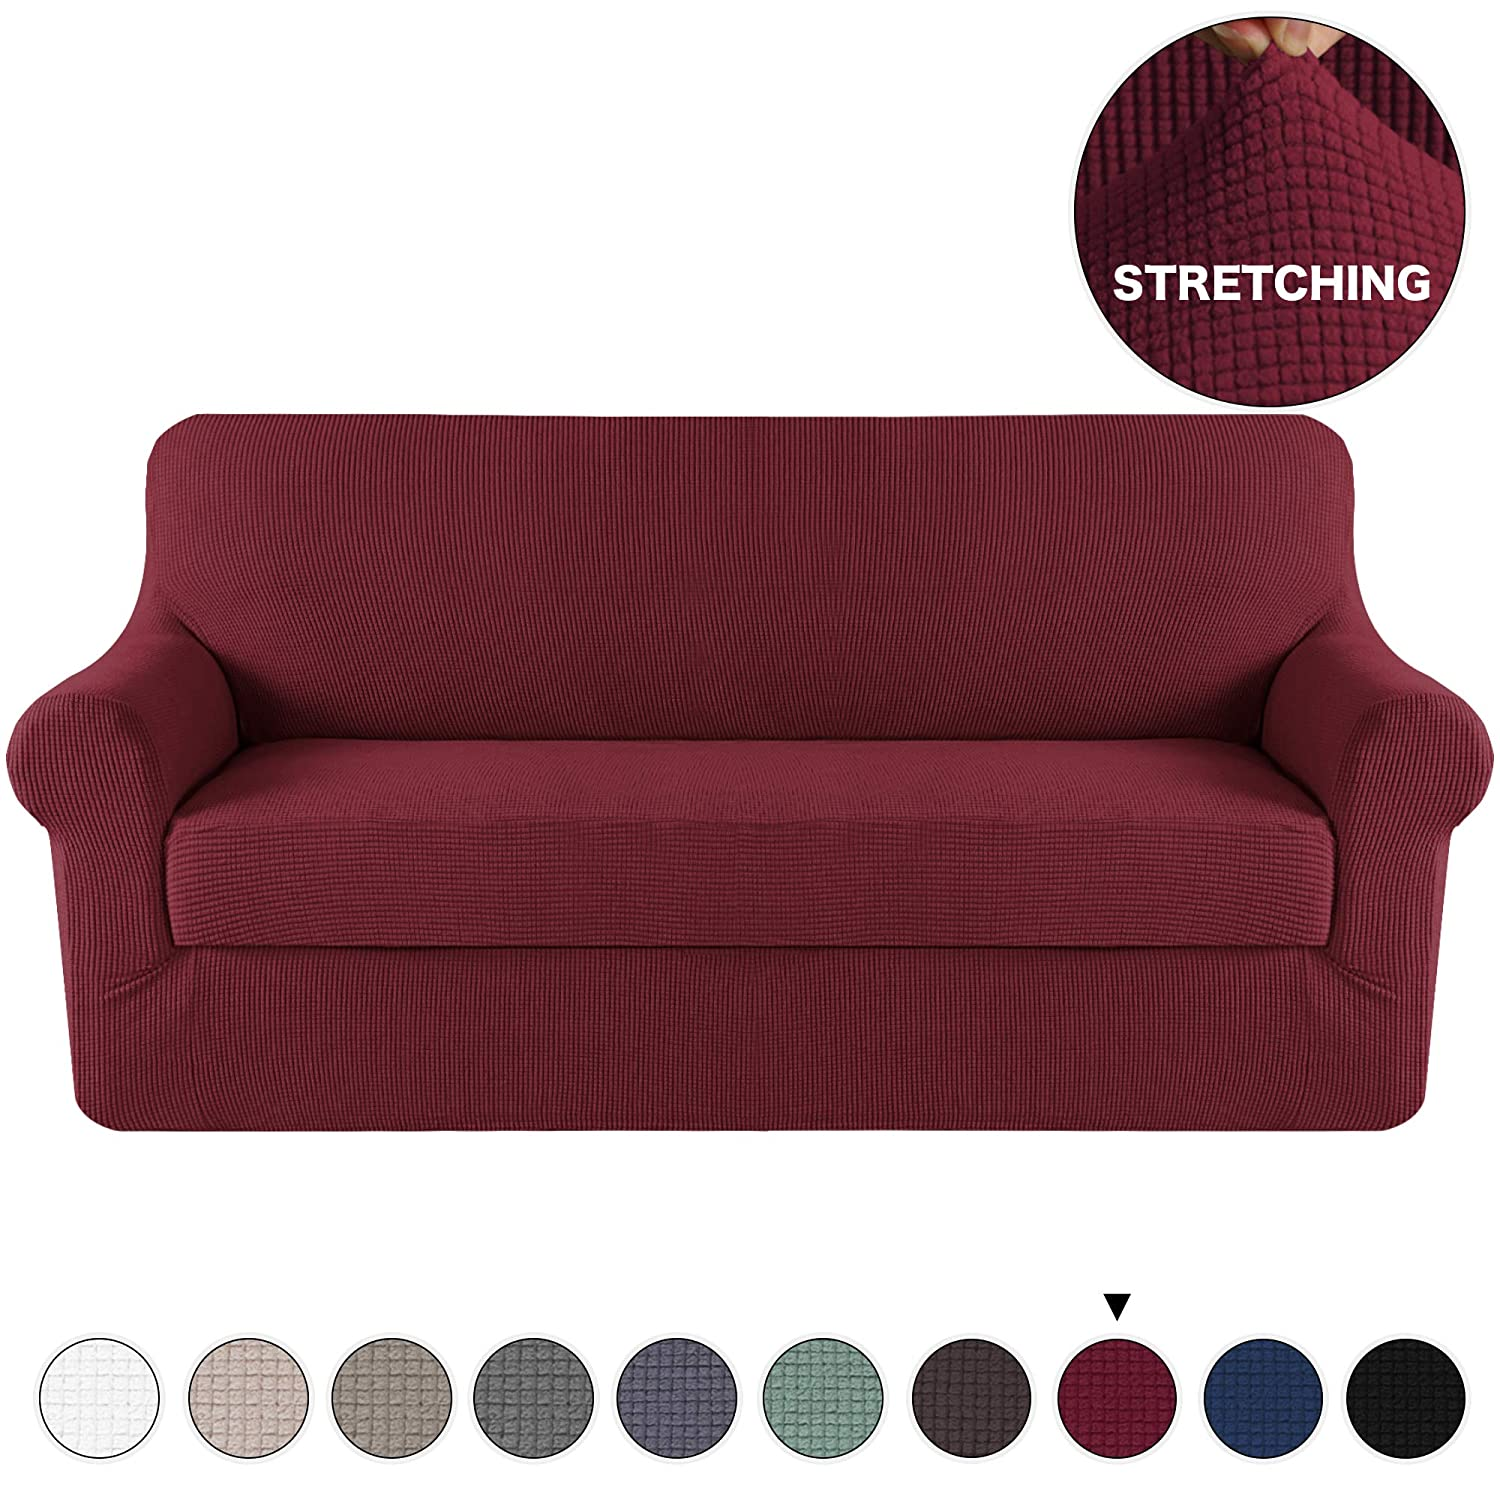 Amazon.com: Stretch Slipcover Sofa Covers Red for 3 Seat Couch ...